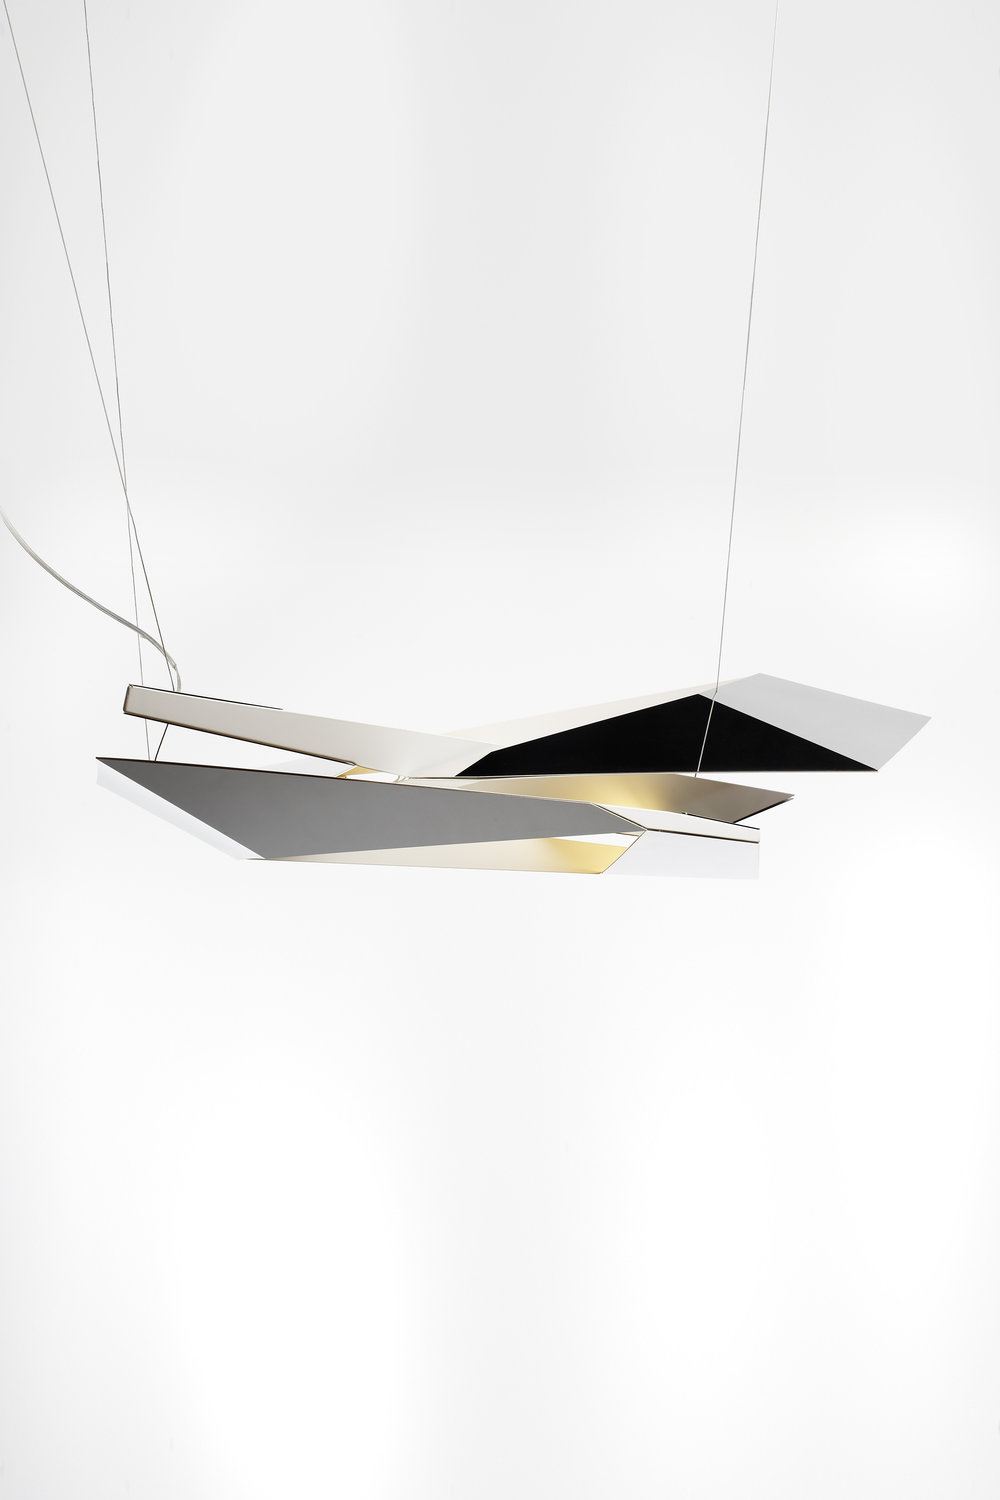 polygon-crash-light_lighting-design_coordination-berlin_00.jpg